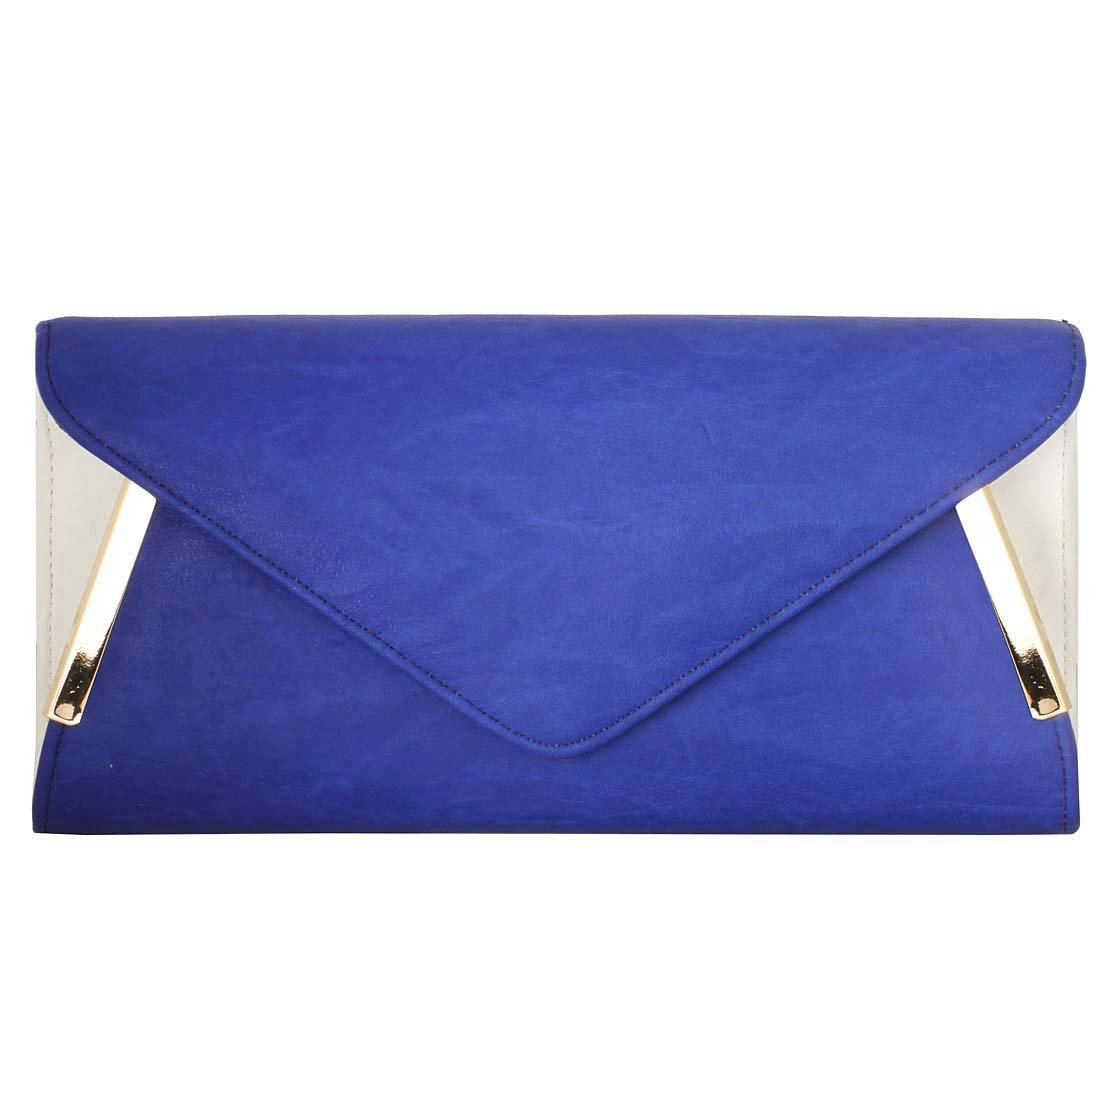 BMC Womens PU Leather White Accent Envelope Clutch - Blue